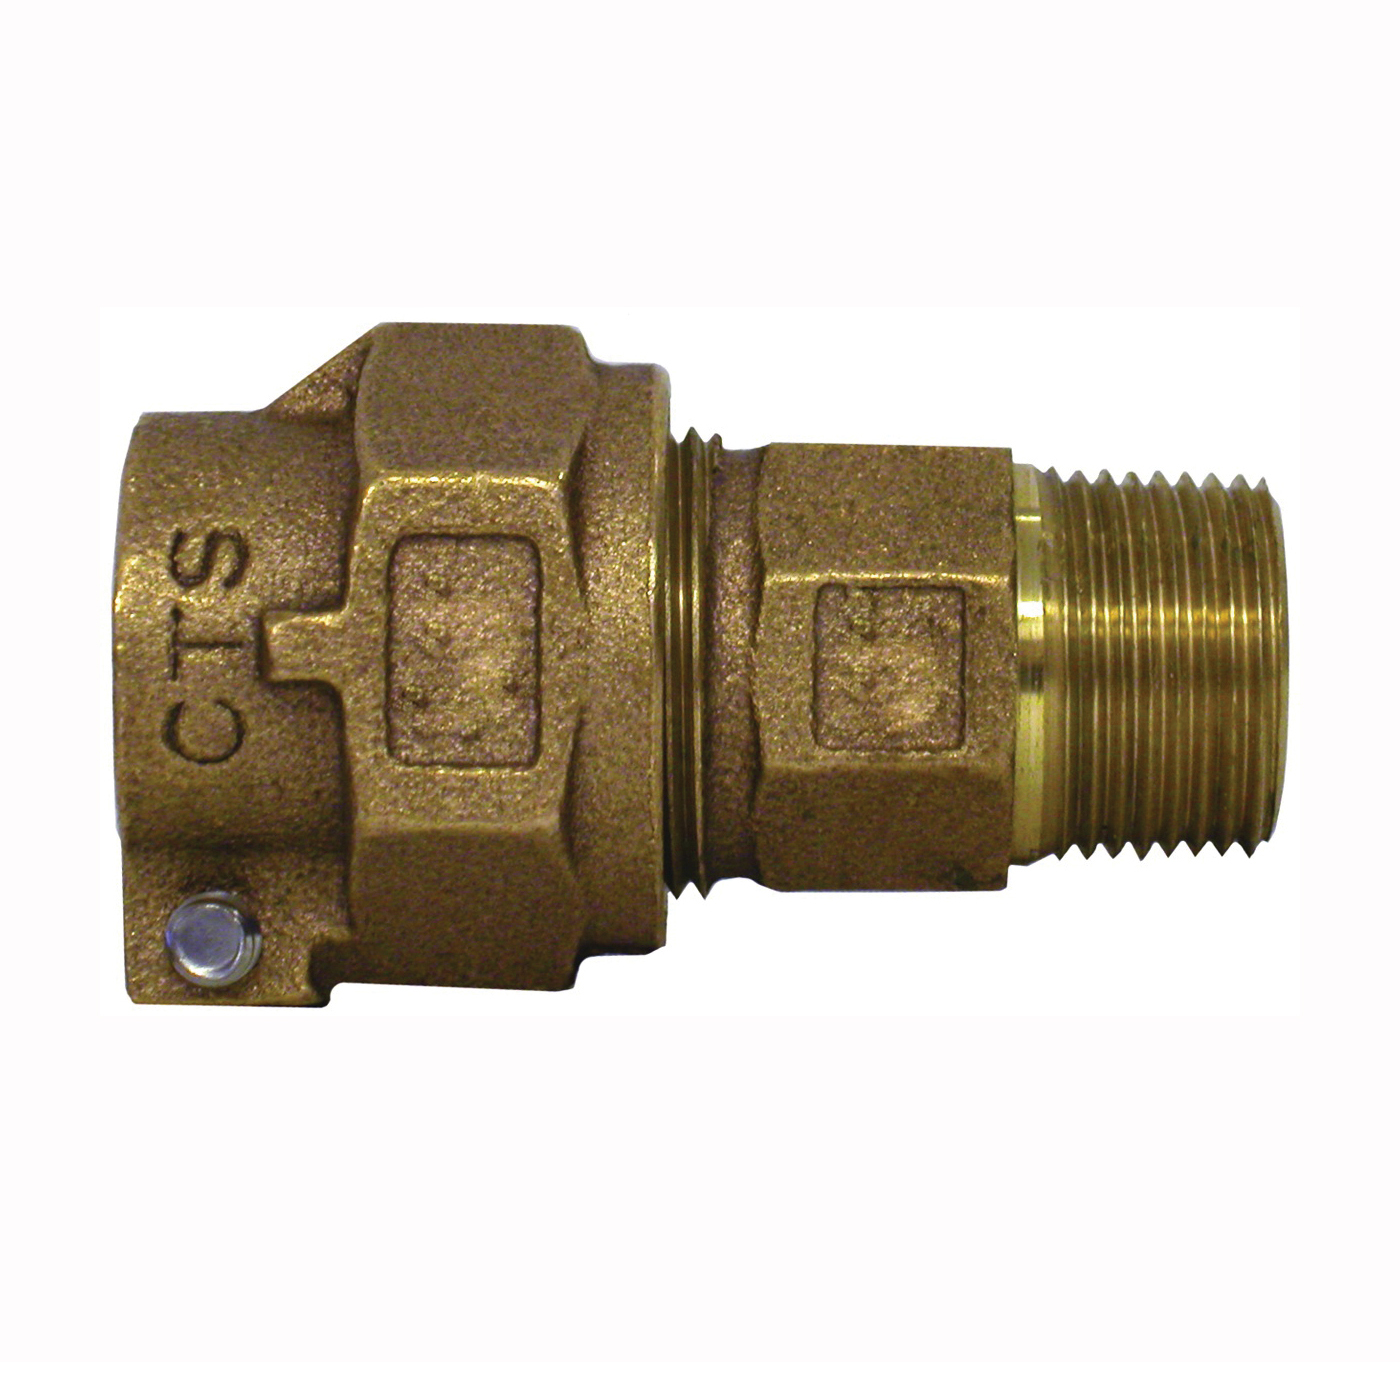 Picture of Legend T-4300NL Series 313-204NL Compression Coupler, 3/4 in, 3.17 in L